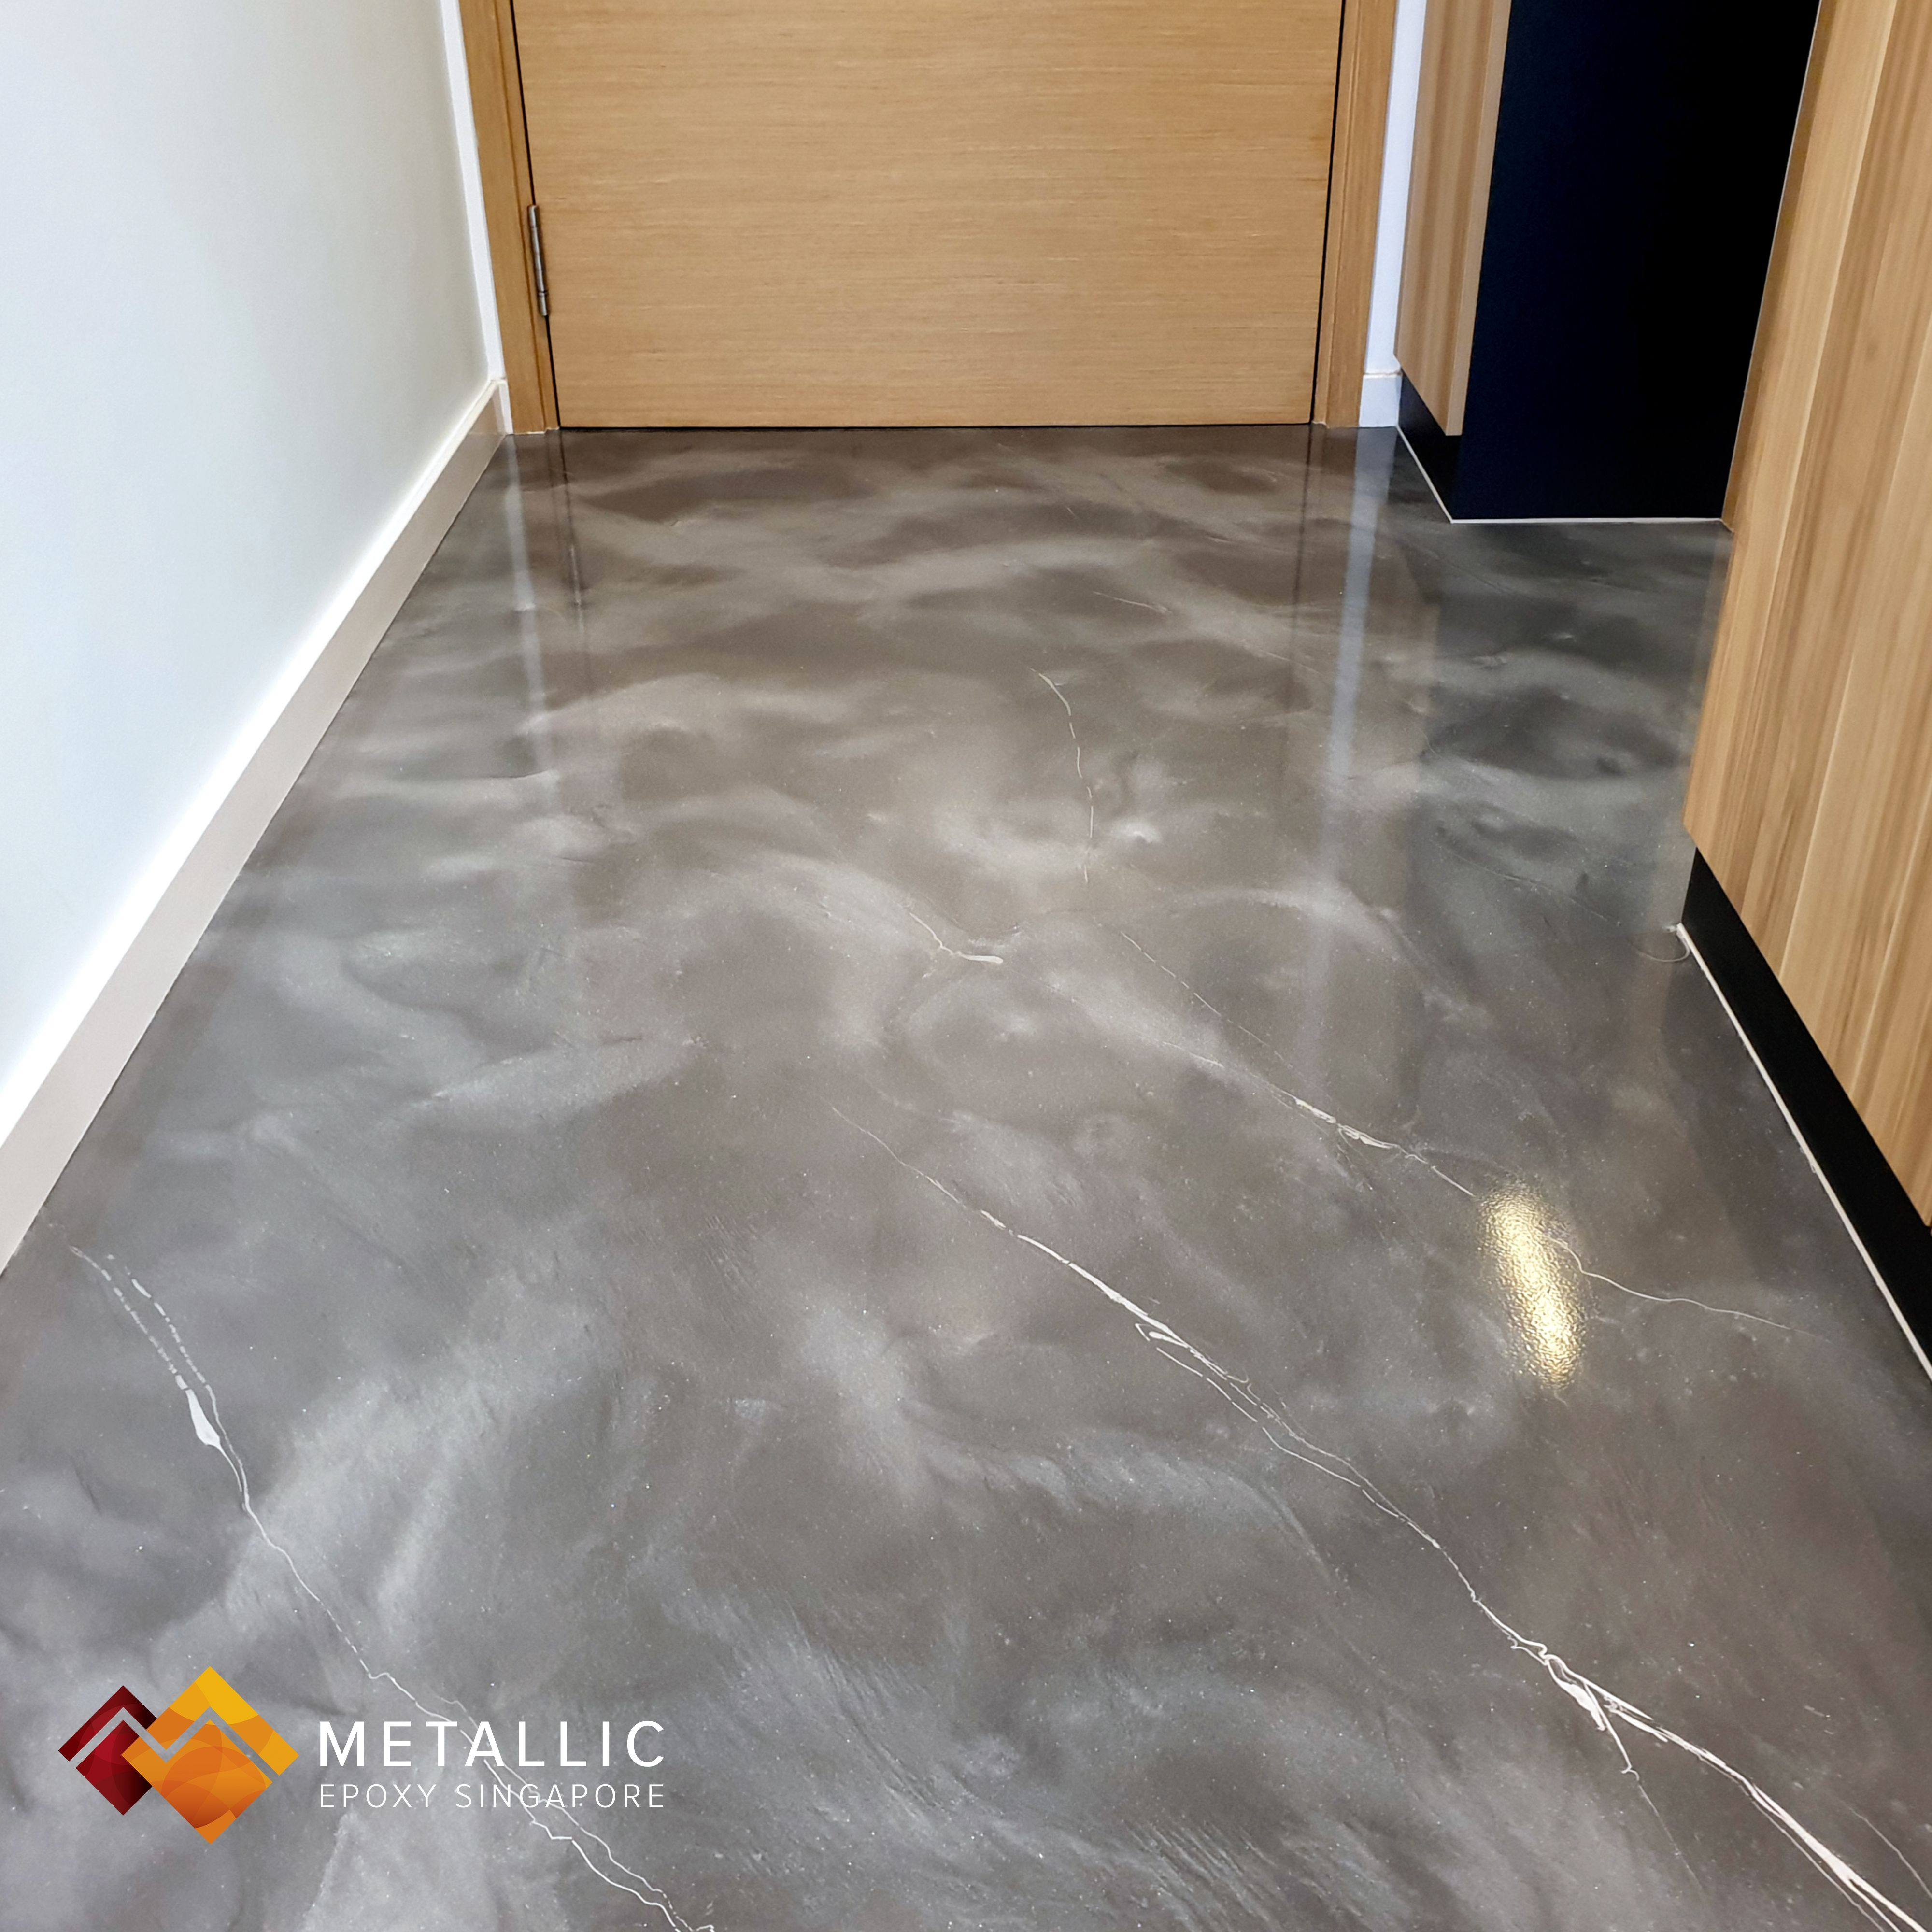 Metallic Epoxy Singapore Silver Base With Chrome Silver Marble Veins Living Room Floor In 2020 Flooring Living Room Flooring Floor Design